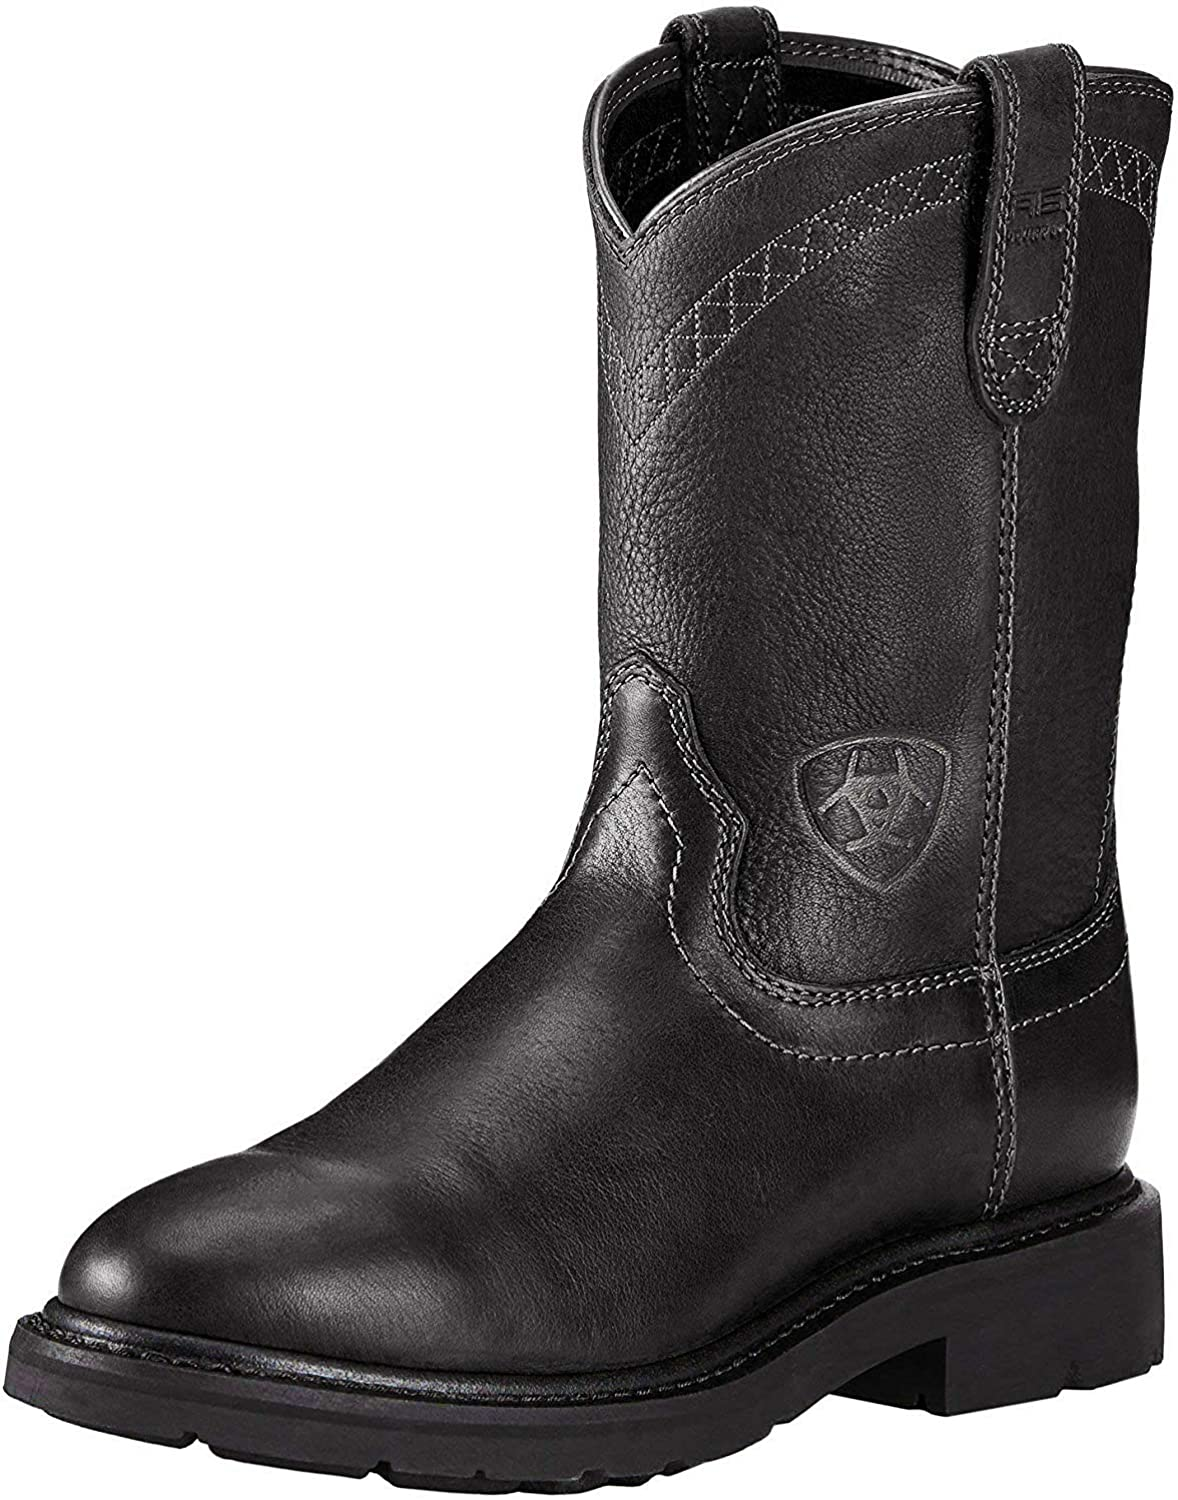 ARIAT Men's Sierra Work Boot